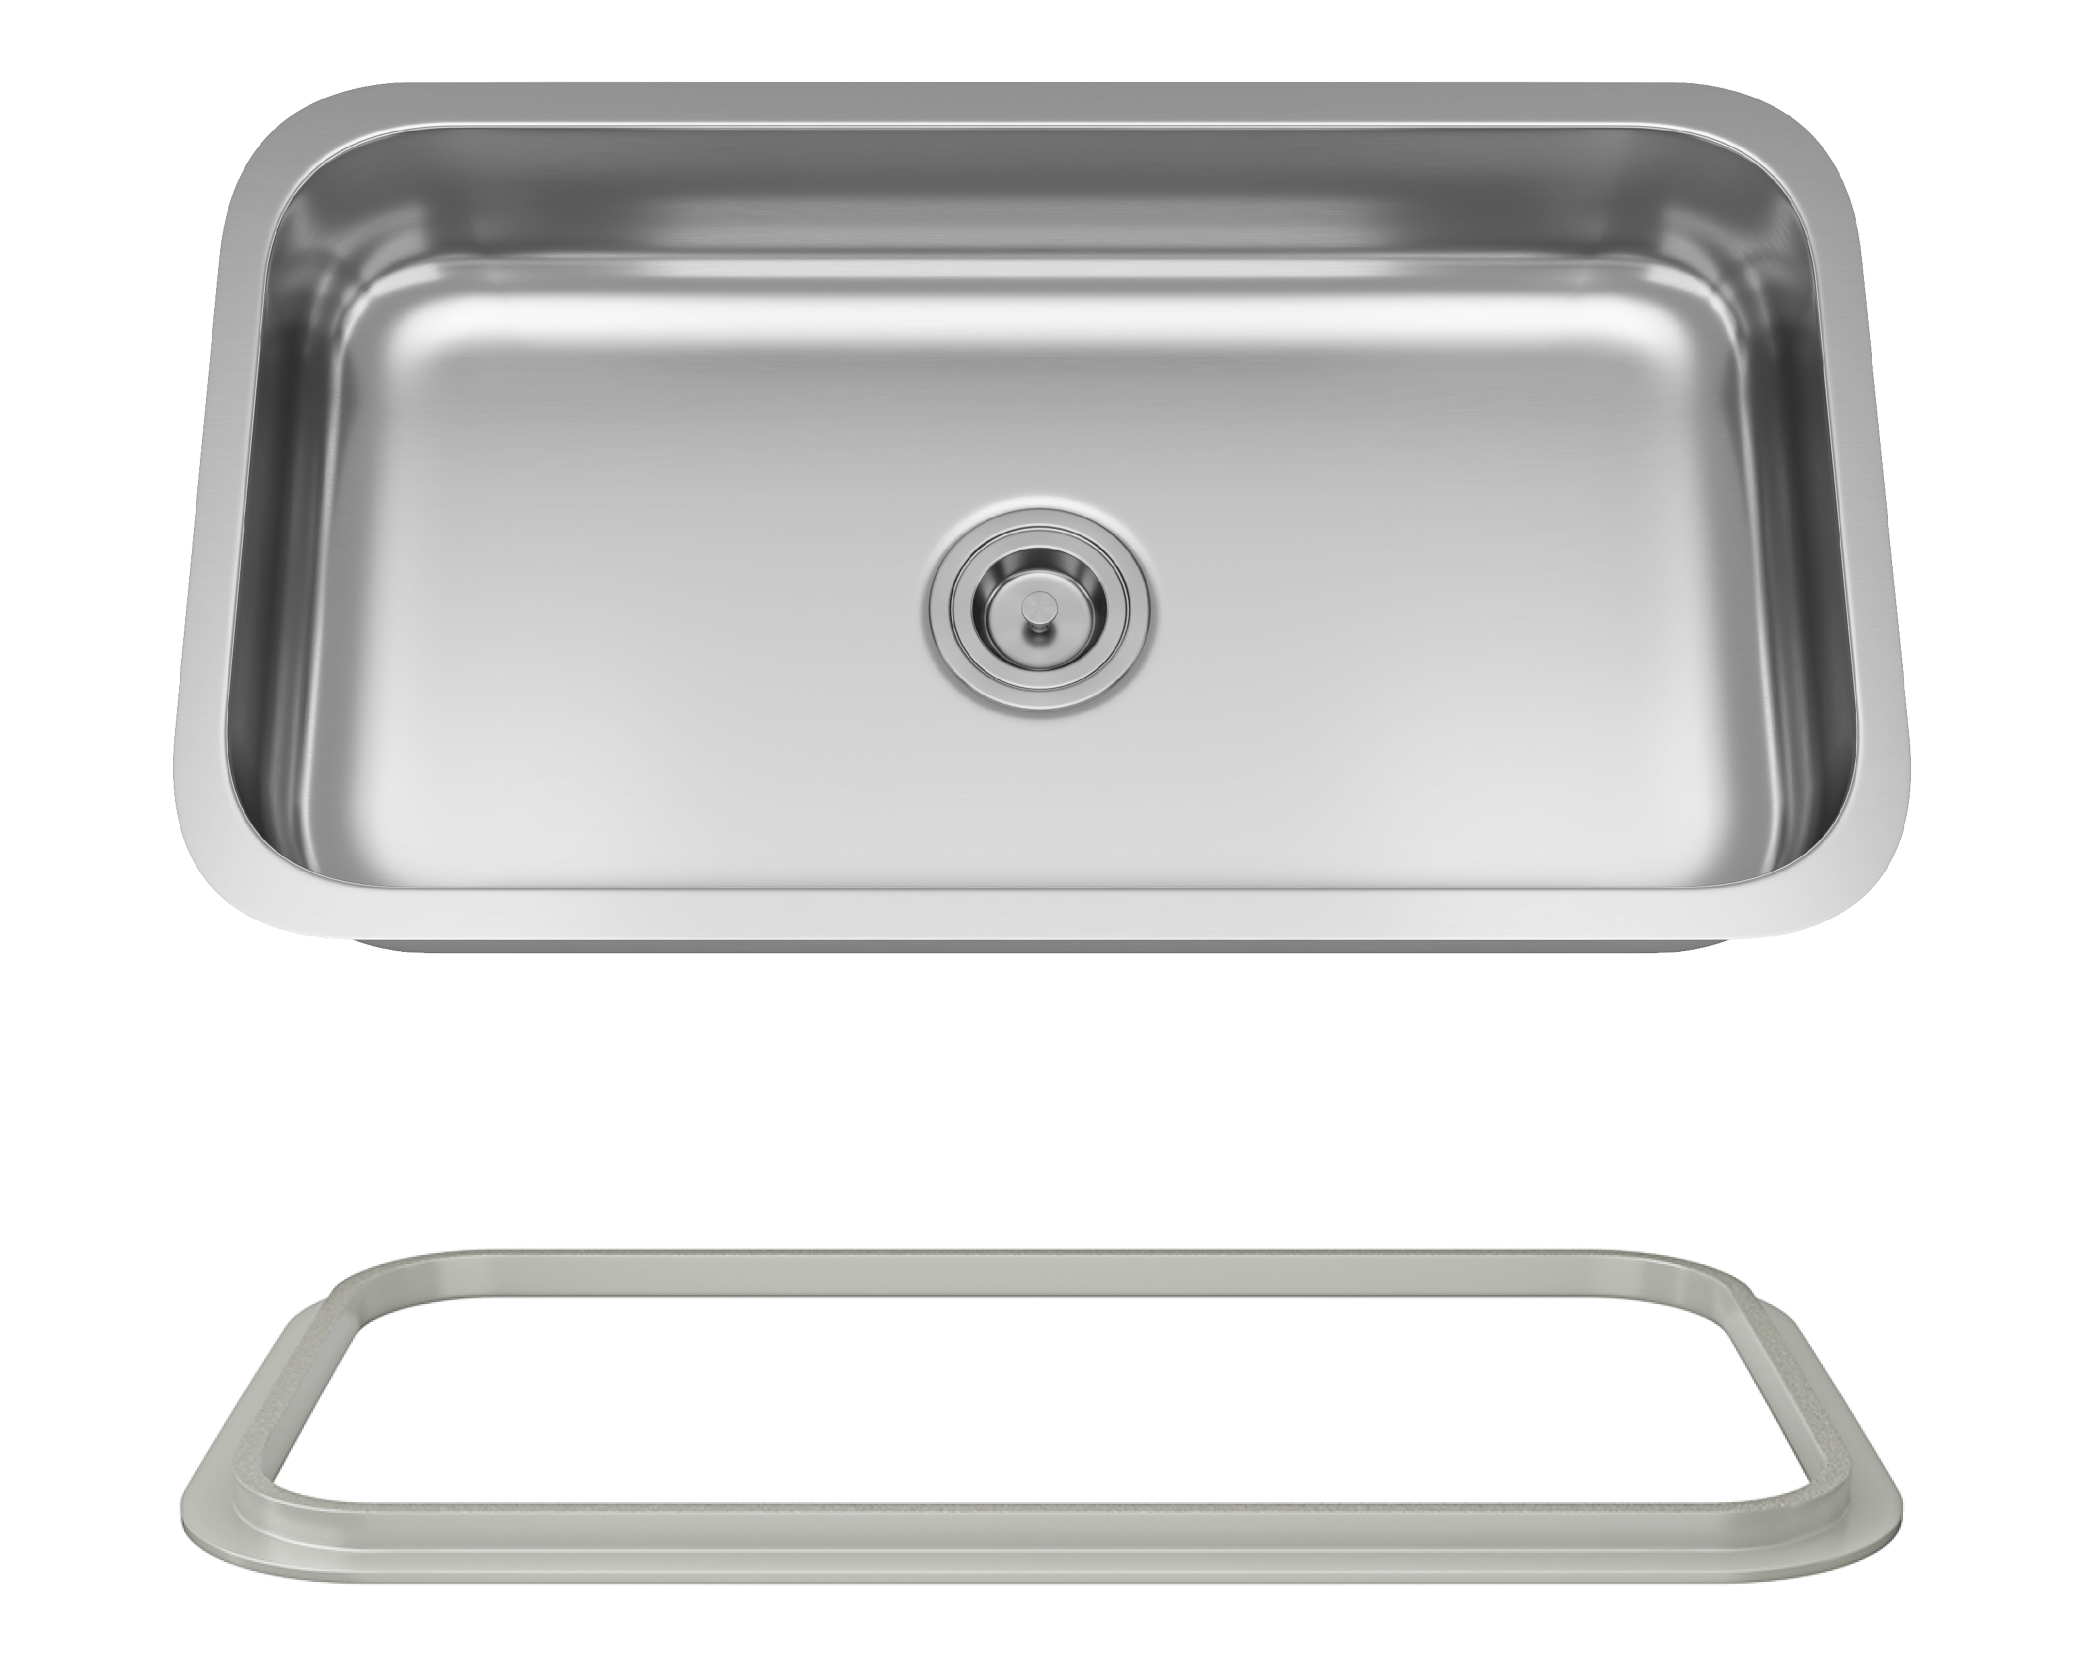 MR Direct ADA3218C-SLG Single Bowl Undermount Stainless Steel ADA Sink with SinkLink